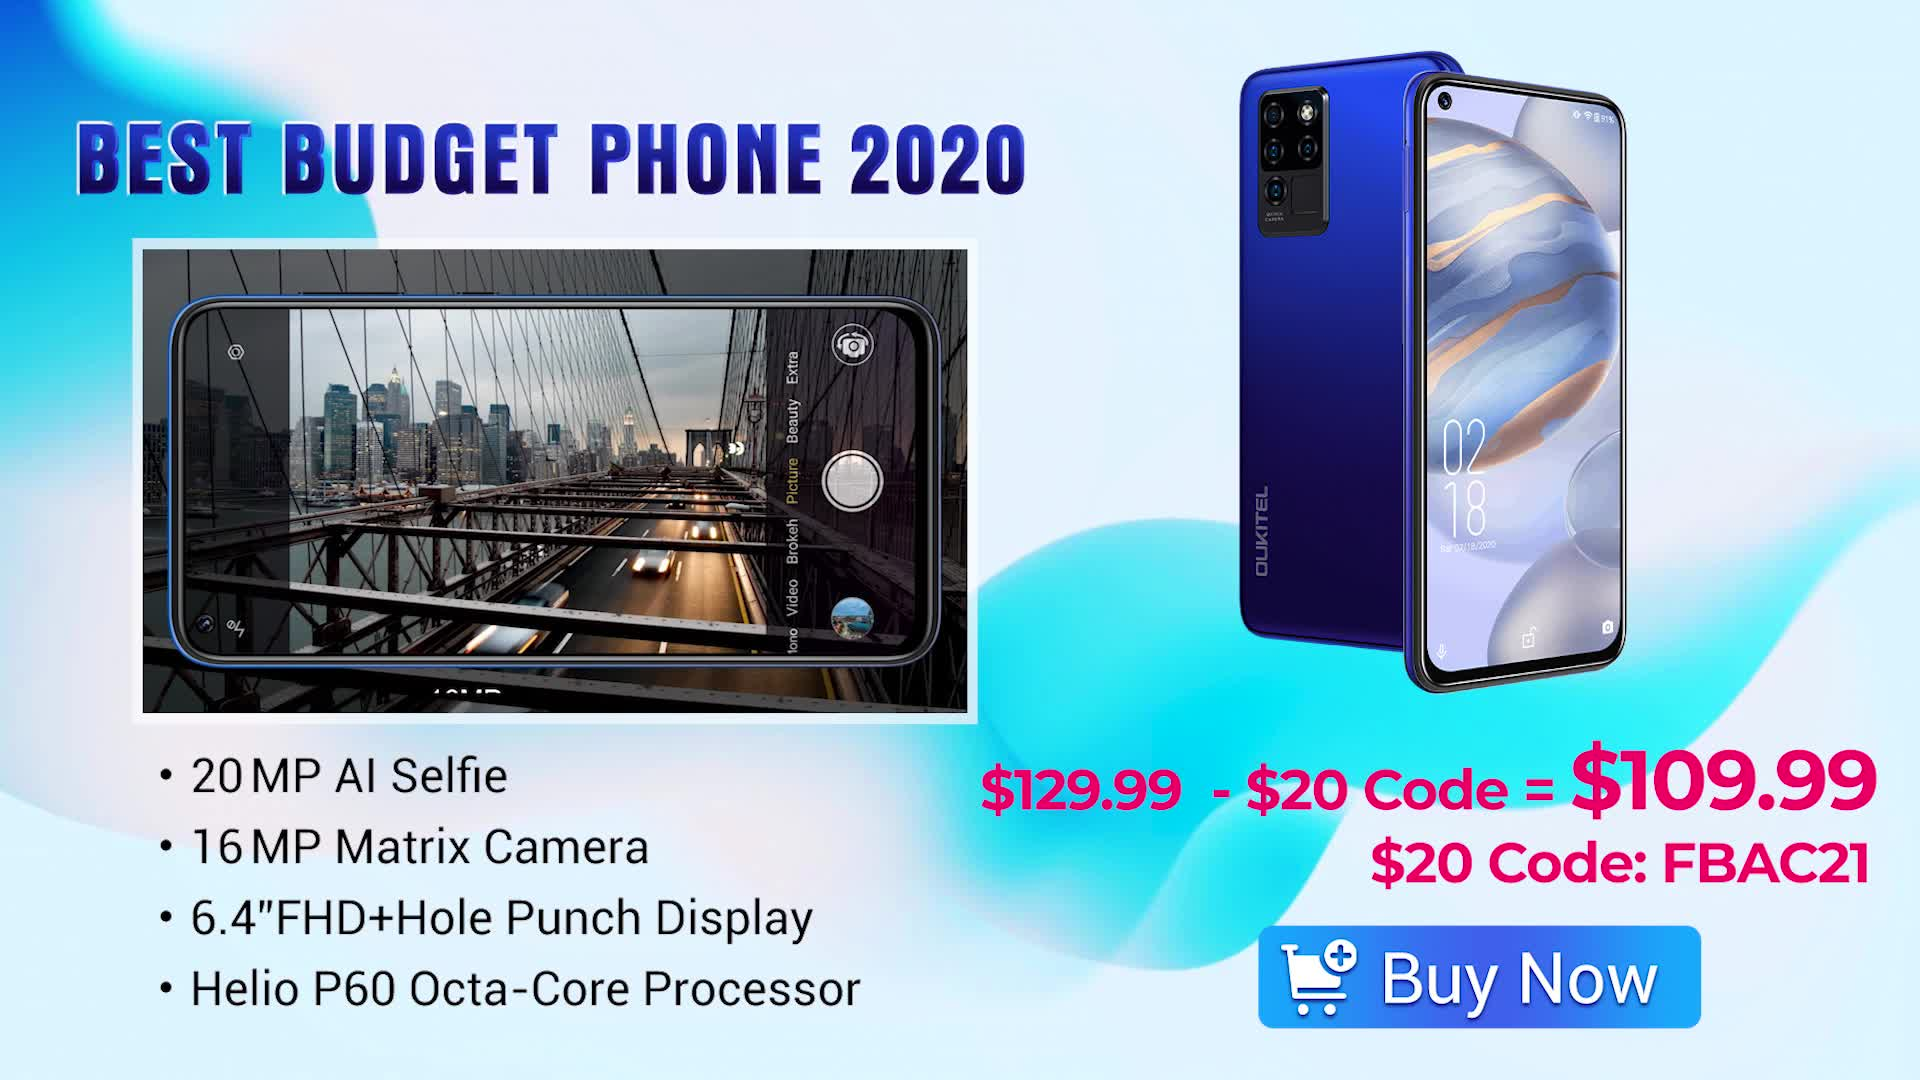 🏆Best budget phone 2020 - Oukitel C21